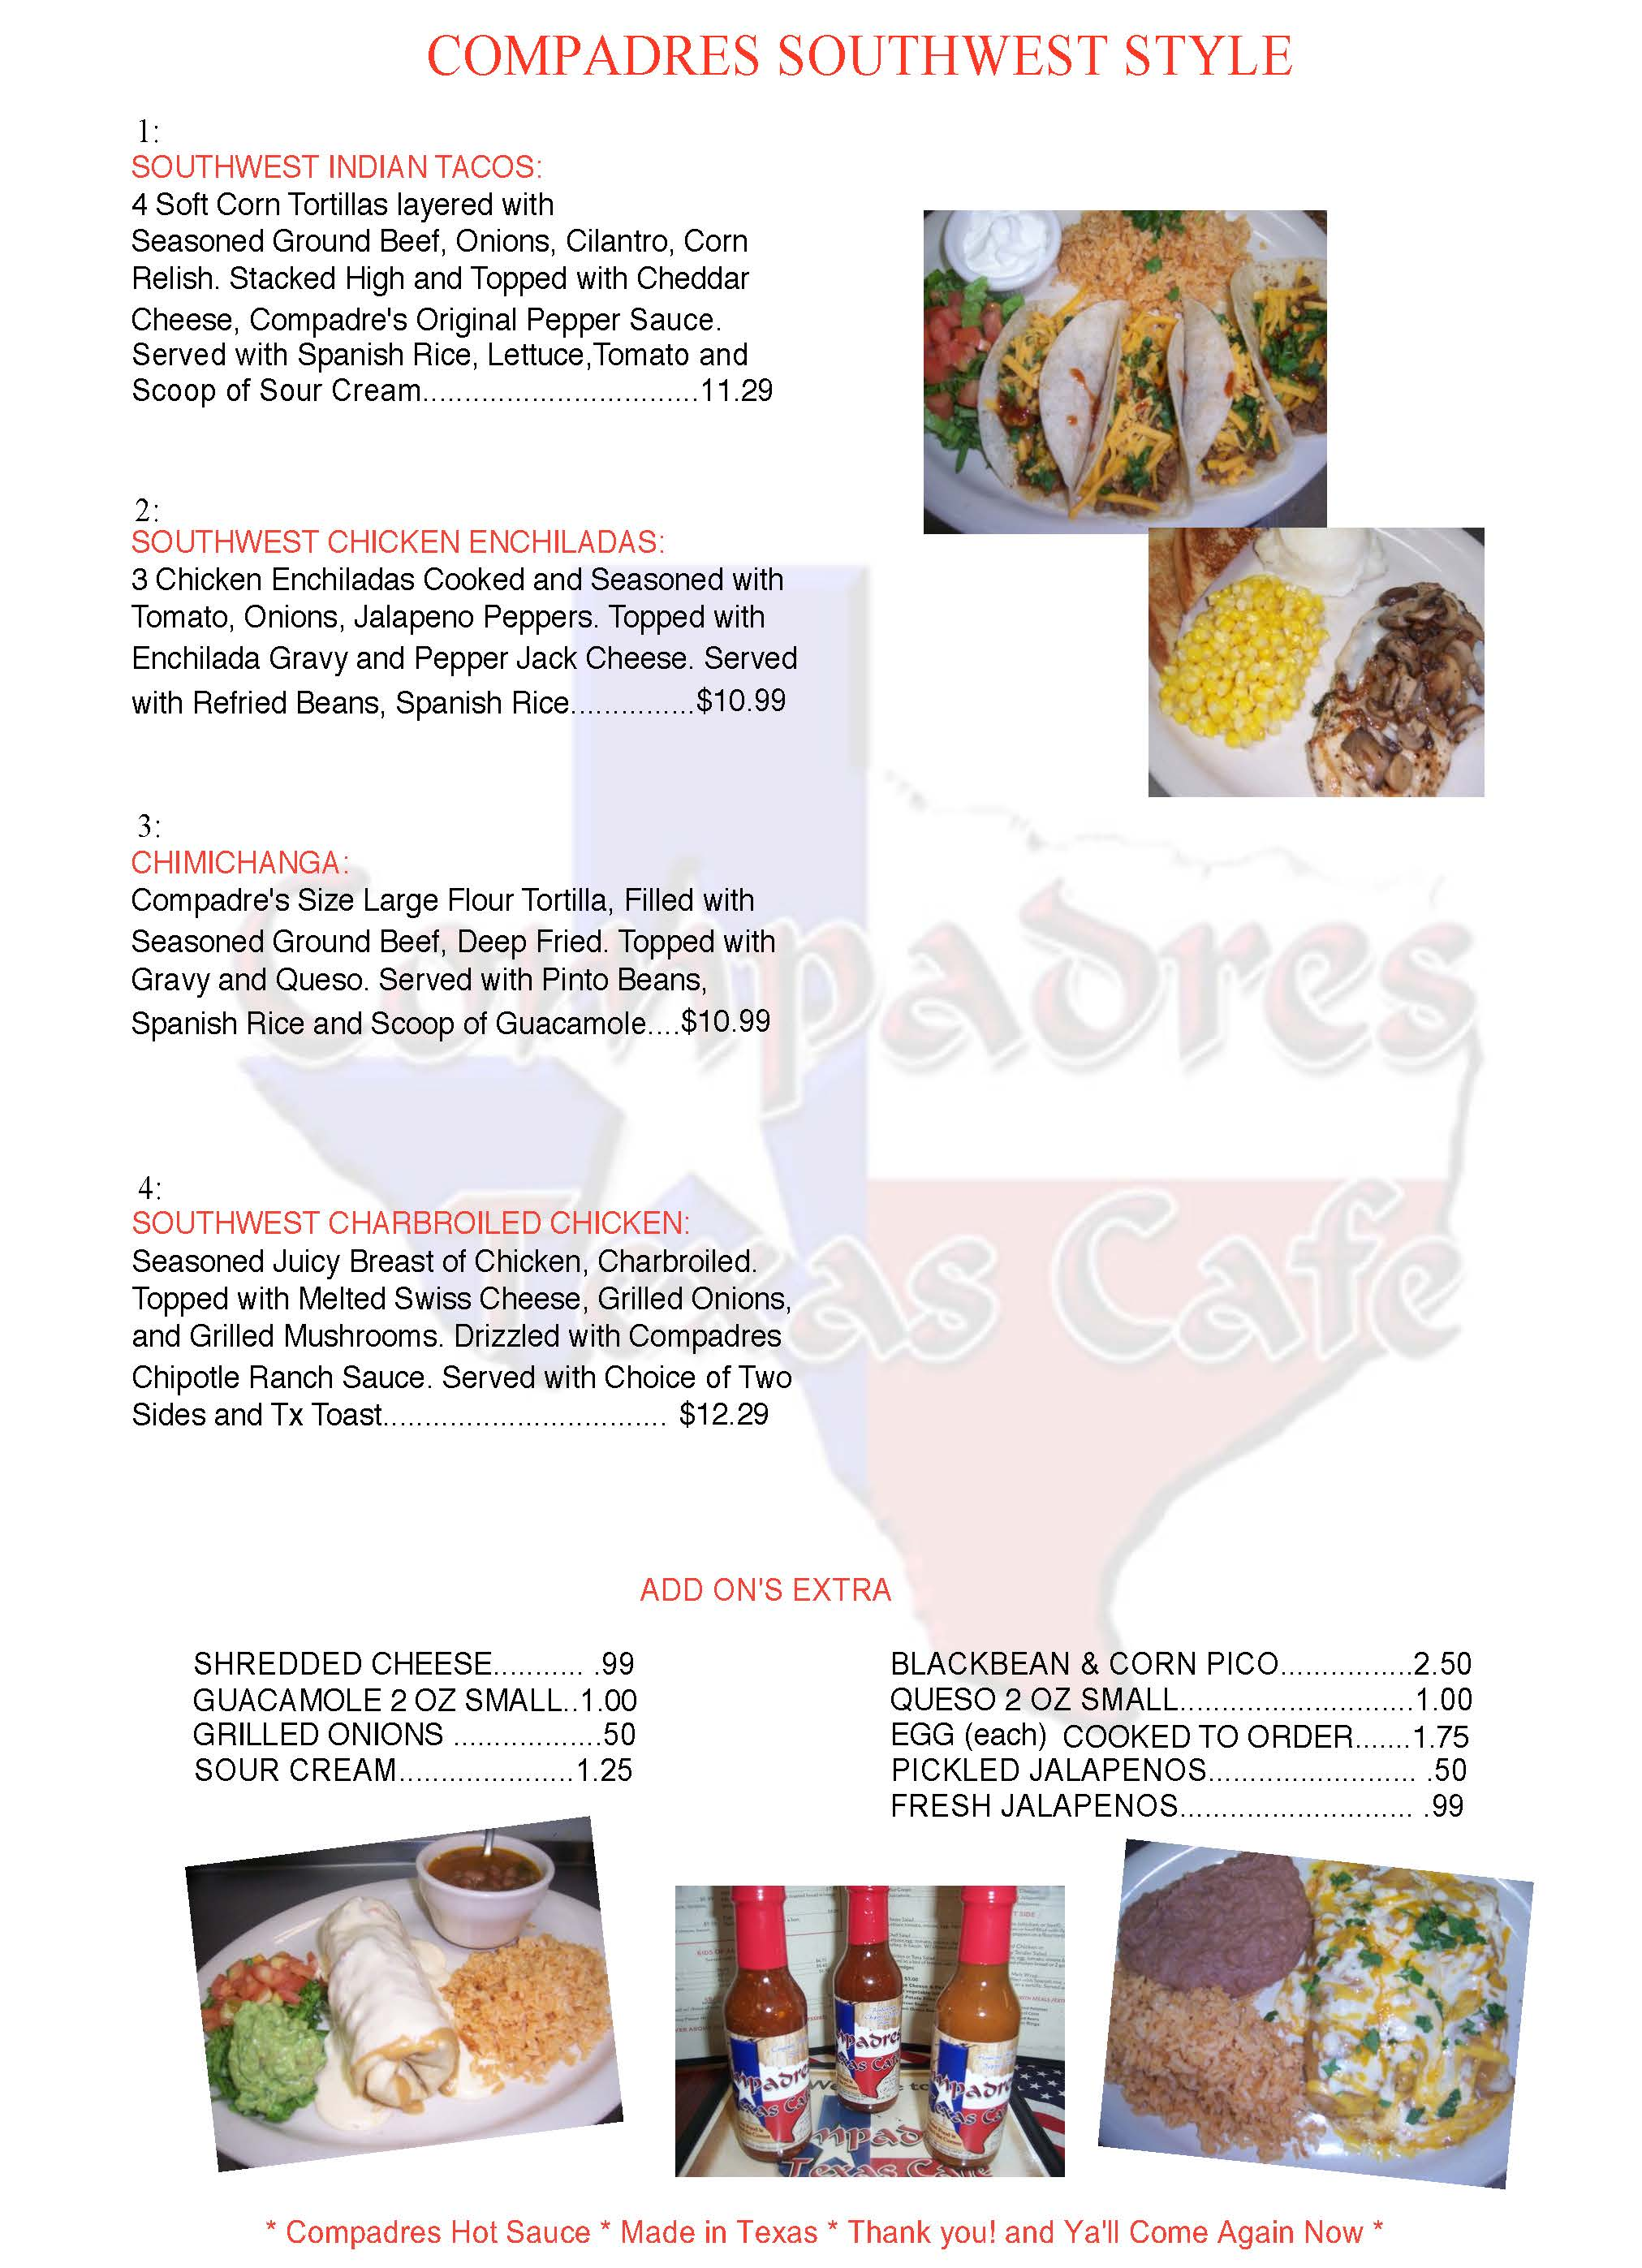 Compadres Texas Cafe, Mexican / Southwest family Restaurant, Lunch, Dinner menu.